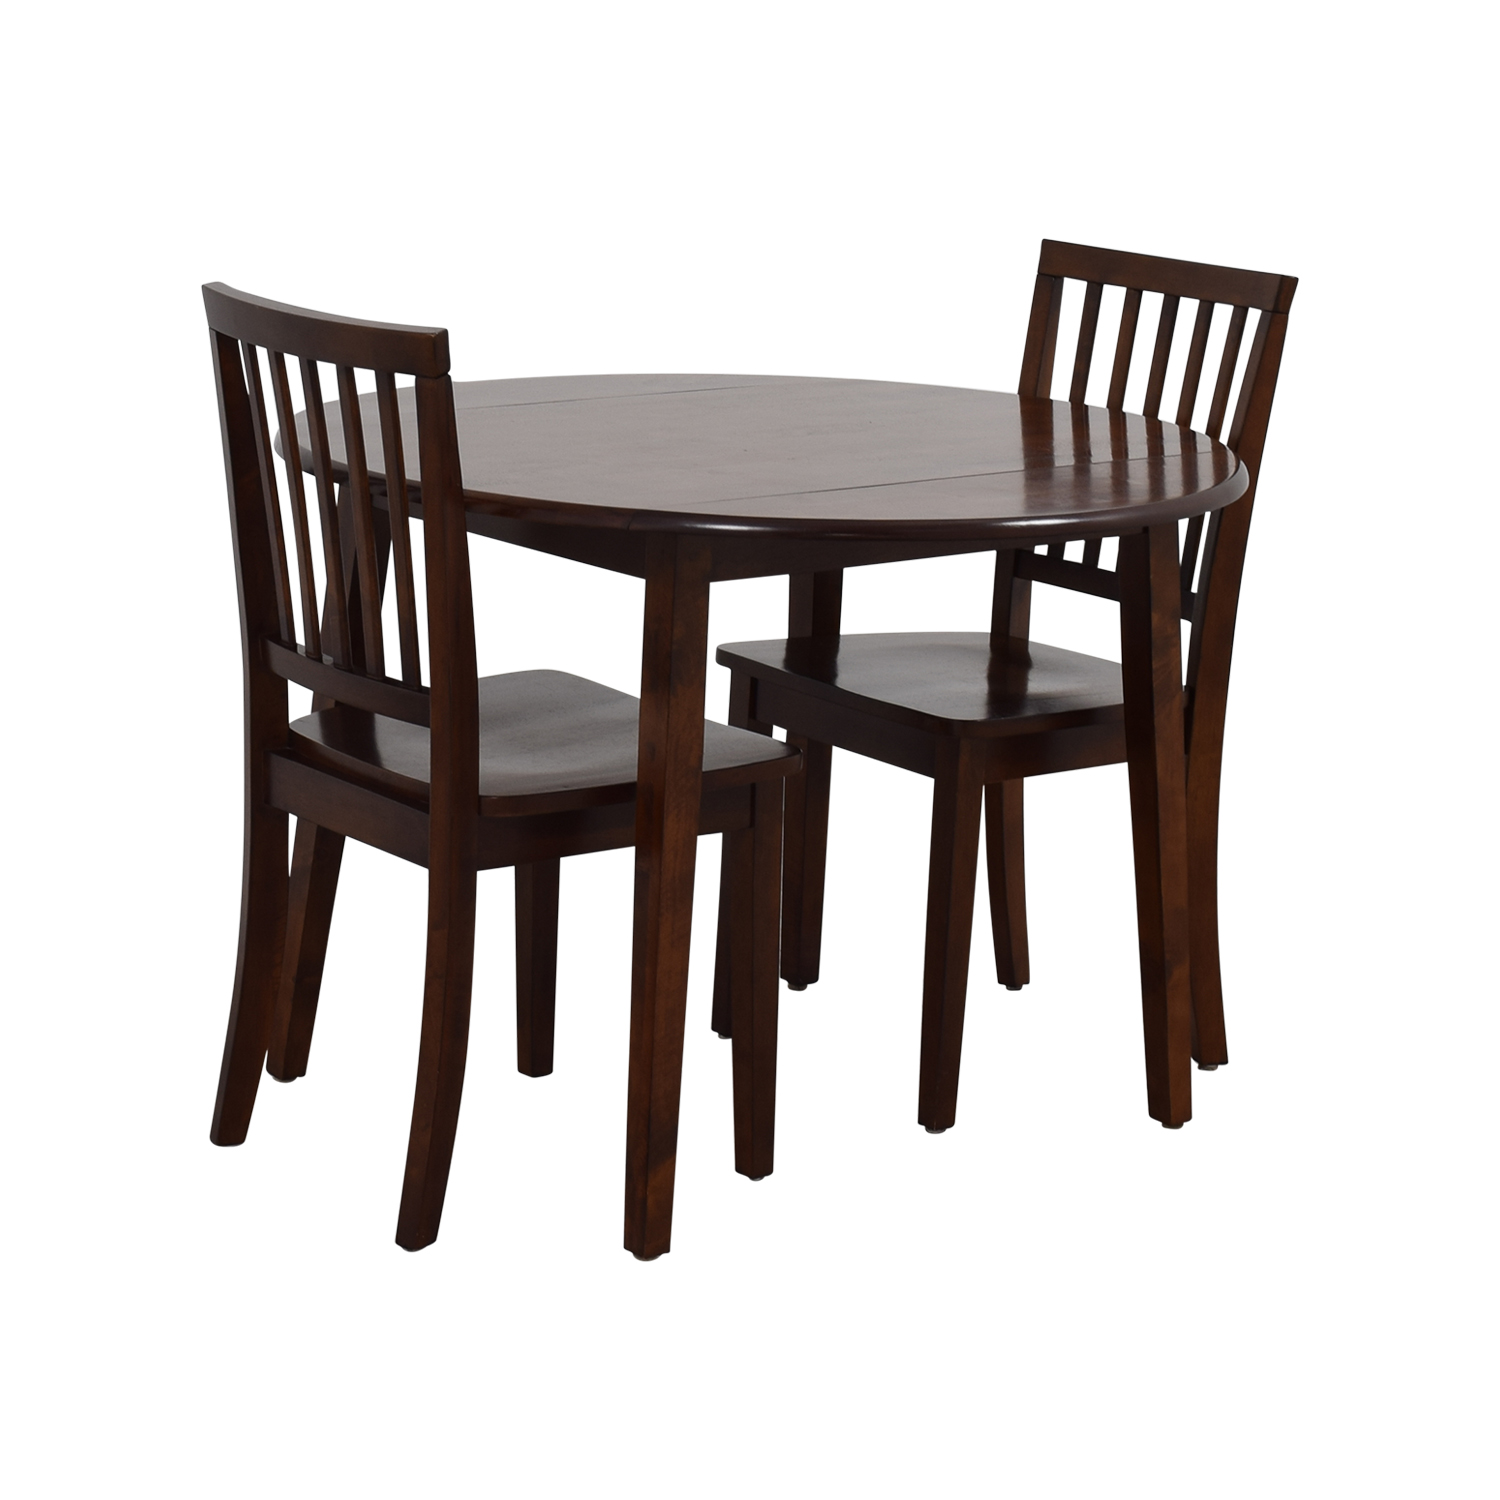 Breakfast Table and Chairs Dining Sets